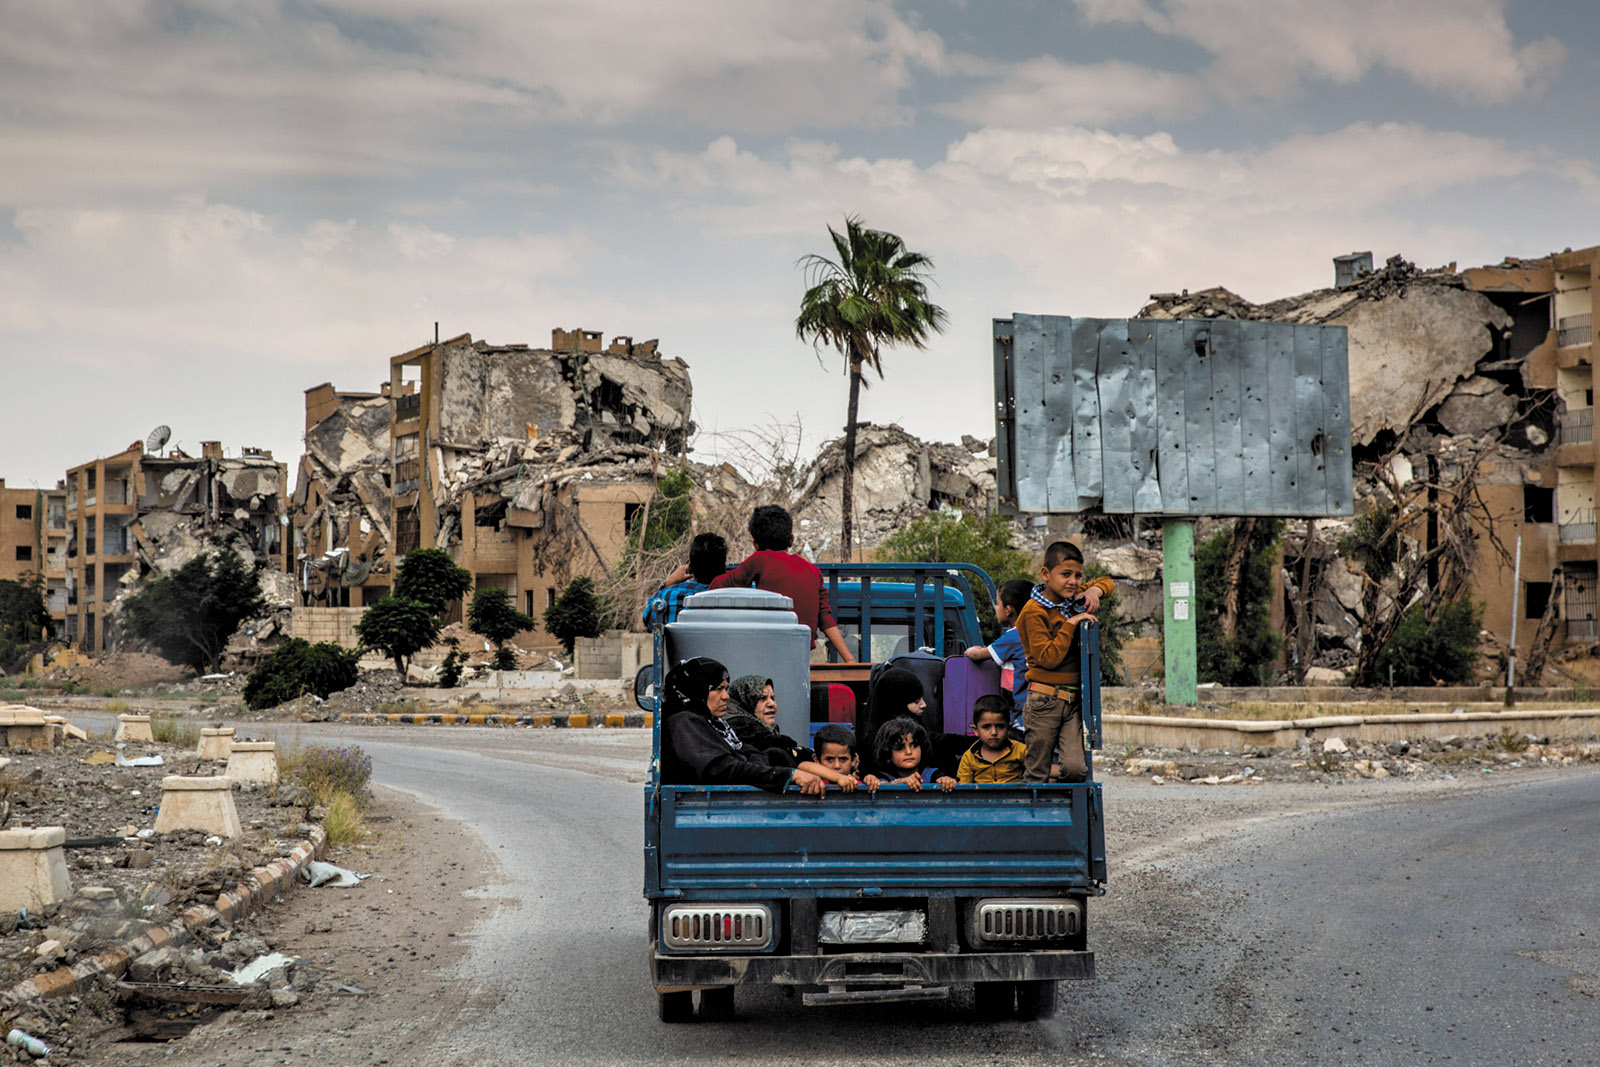 Family members returning to what remains of their neighborhood after years of being displaced by ISIS, Raqqa, Syria, June 2018